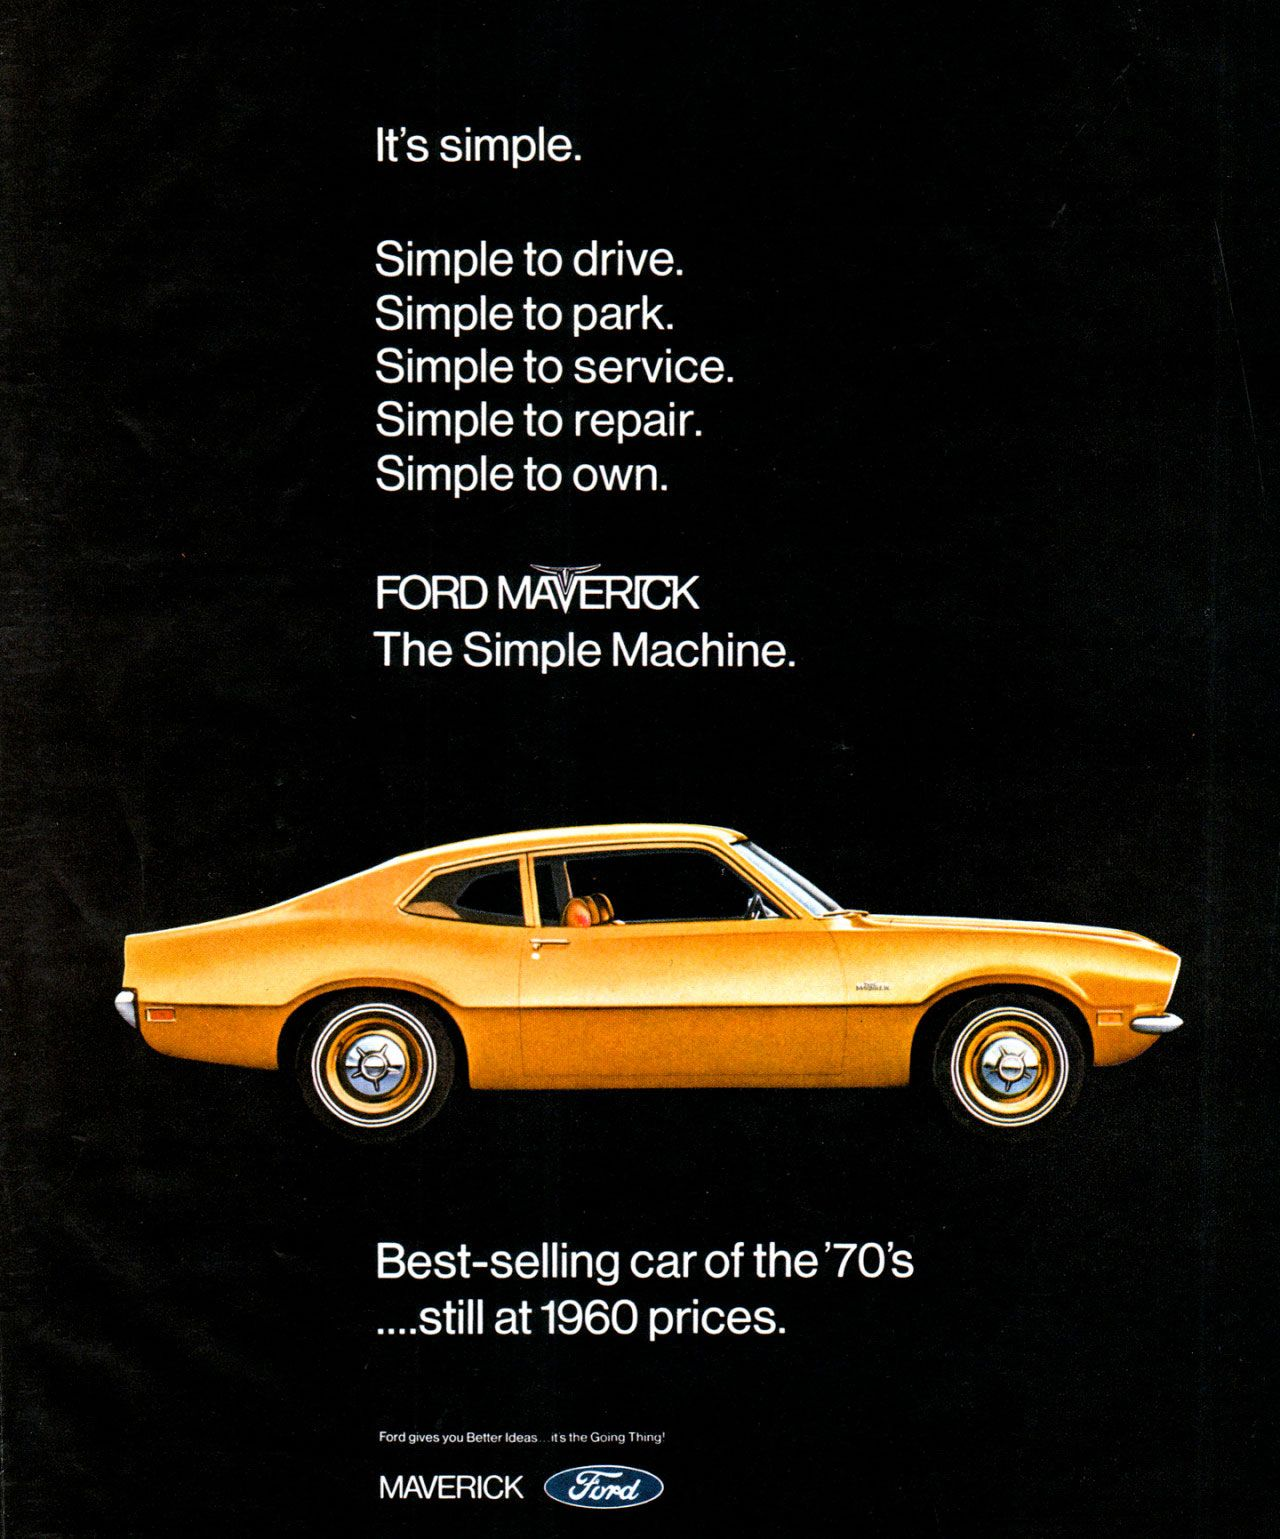 It's simple. Simple to drive. Simple to park. Simple to service. Simple to repair. Simple to own. Ford Maverick. The Simple Machine. Best-selling car of the 1970's... still at 1960 prices.